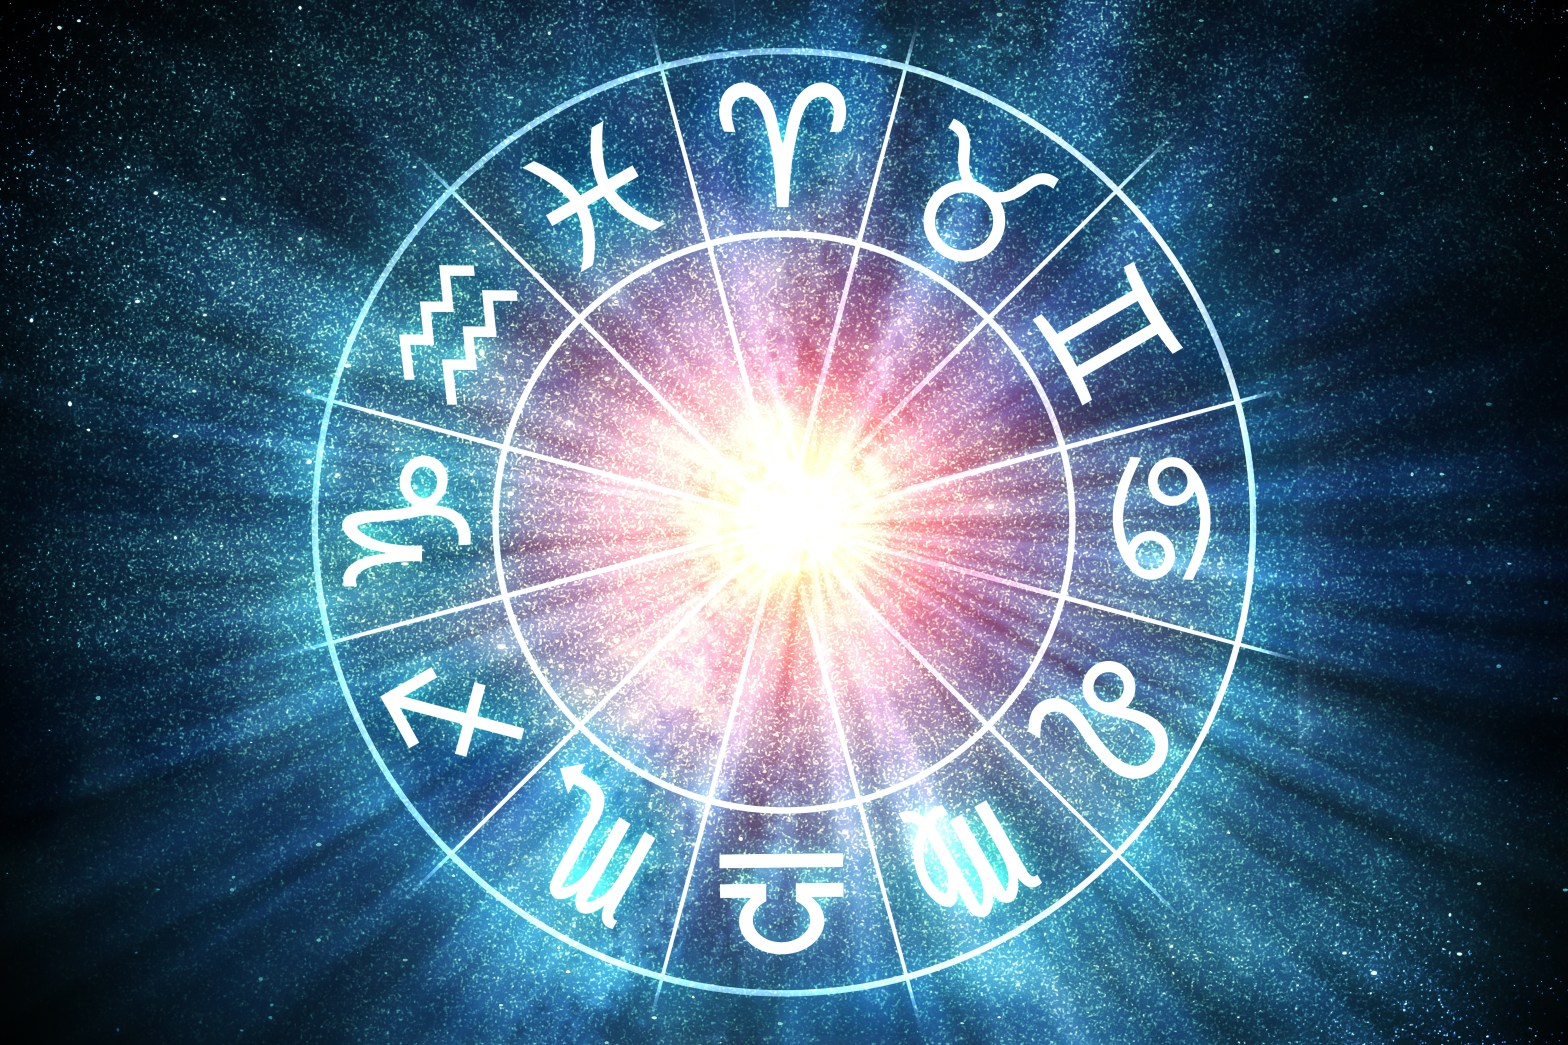 Astrology houses chart, 1st house, first house, 2nd house, second house, 3rd house, third house, 4th house, fourth house, 5th house, fifth house, 6th house, sixth house, 7th house, seventh house, 8th house, eighth house, 9th house, ninth house, tenth house, 10th house, eleventh house, 11th house, 12th house, twelfth house